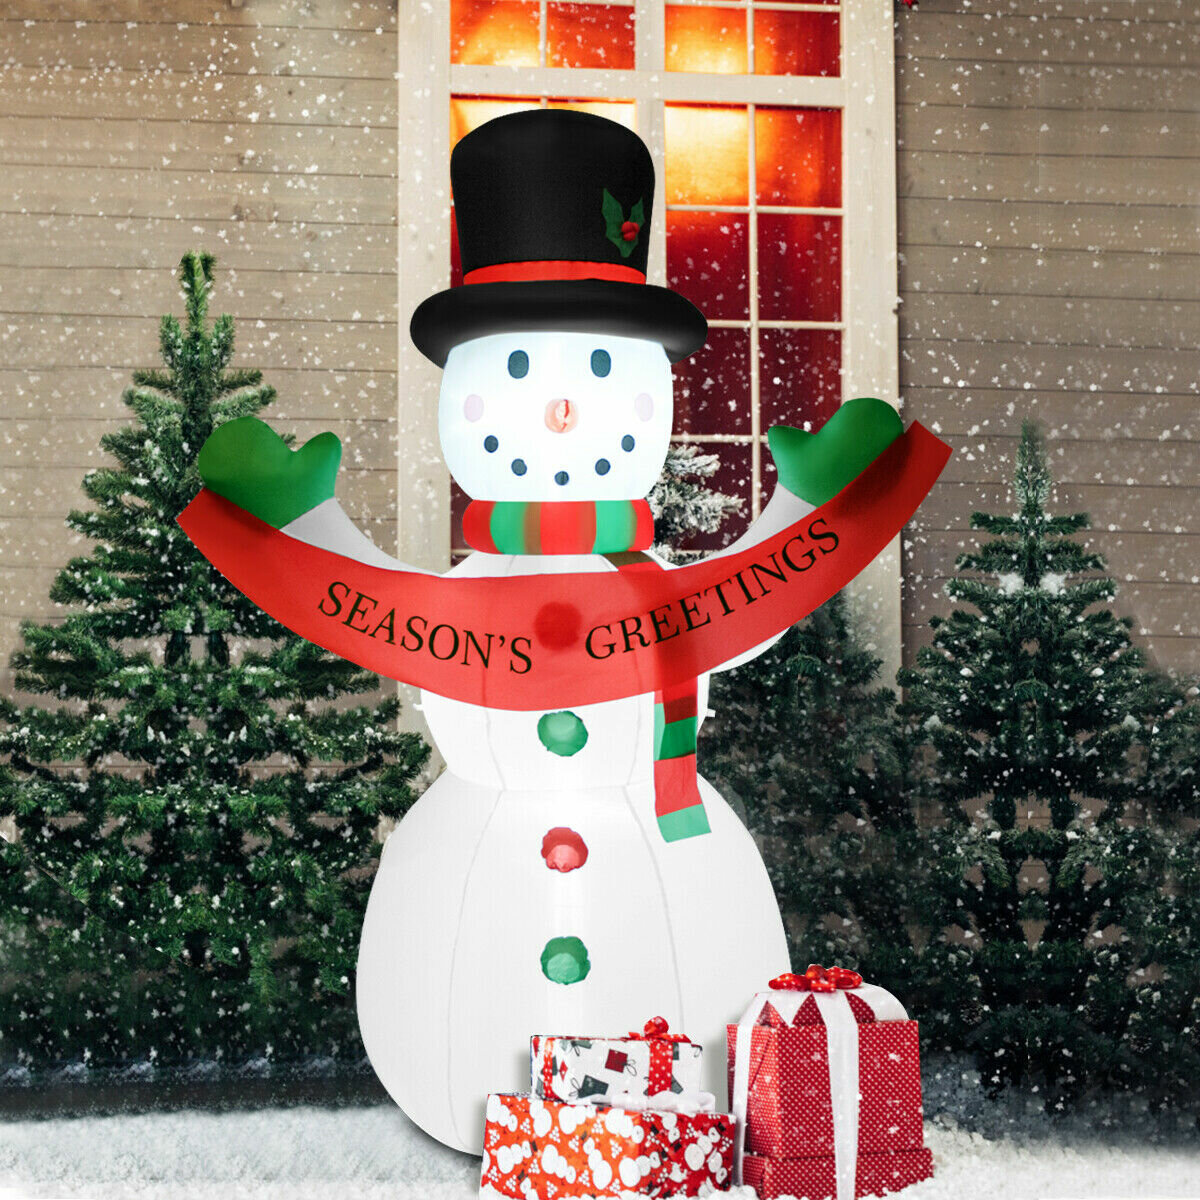 LED Christmas Snowman Blow up Holiday Yard Lawn Party Inflatable